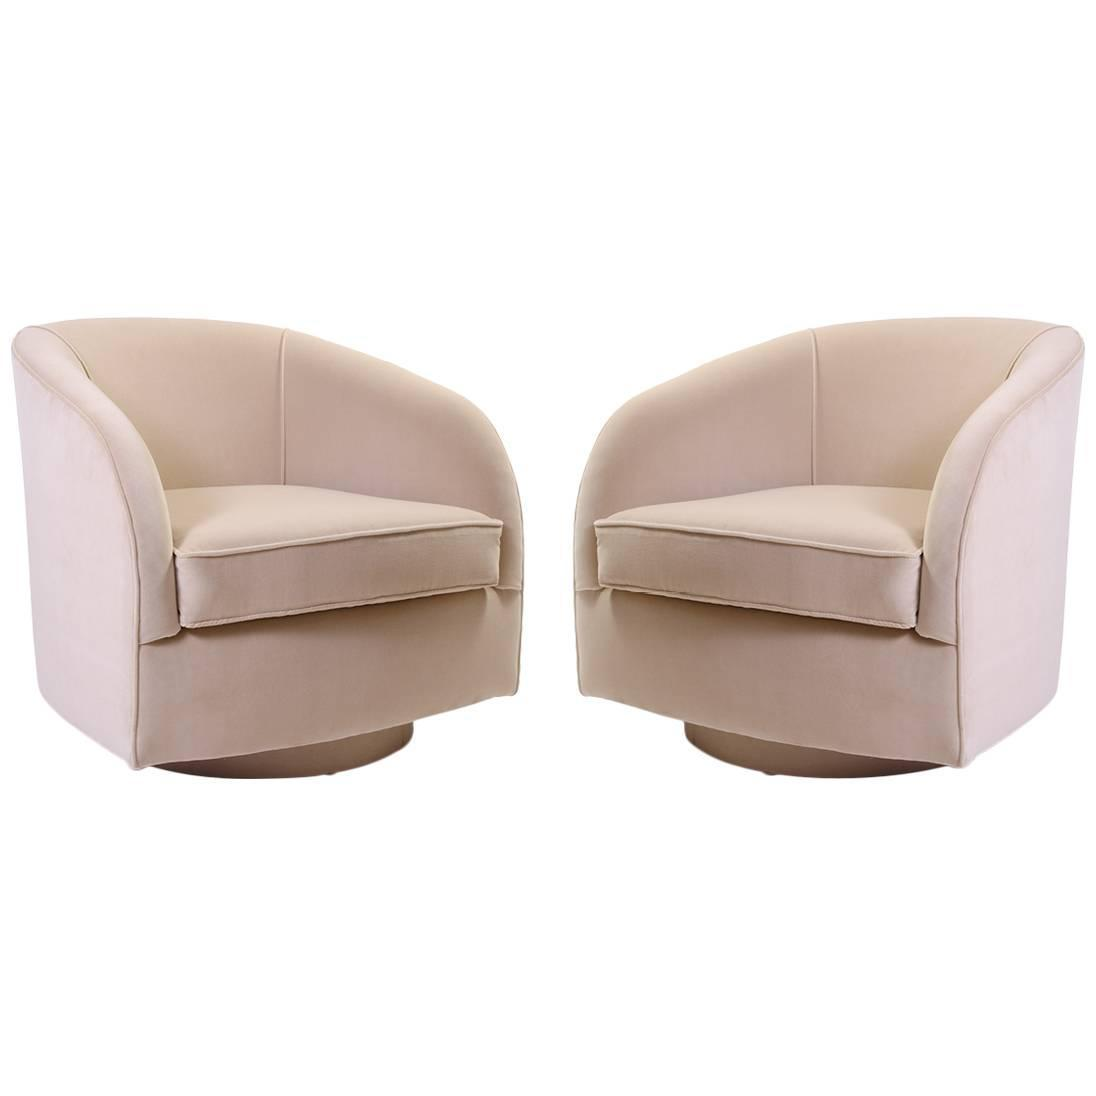 swivel chair mid century covers and sash hire hertfordshire chairs in sand velvet for sale at 1stdibs